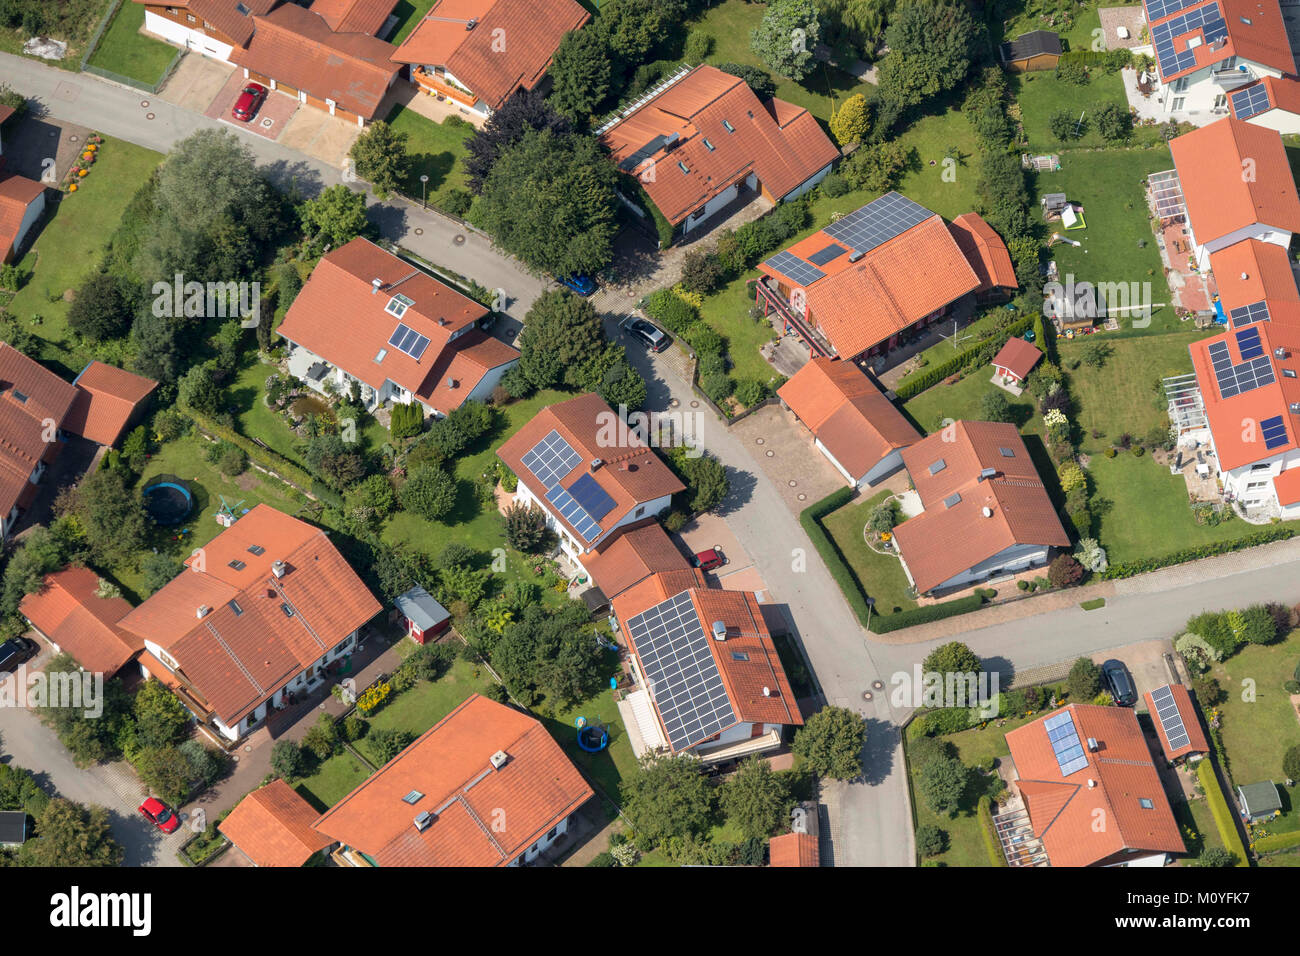 Aerial view of houses with solar panels, Calvistraße, 86971 Peiting, Bavaria, Germany - Stock Image